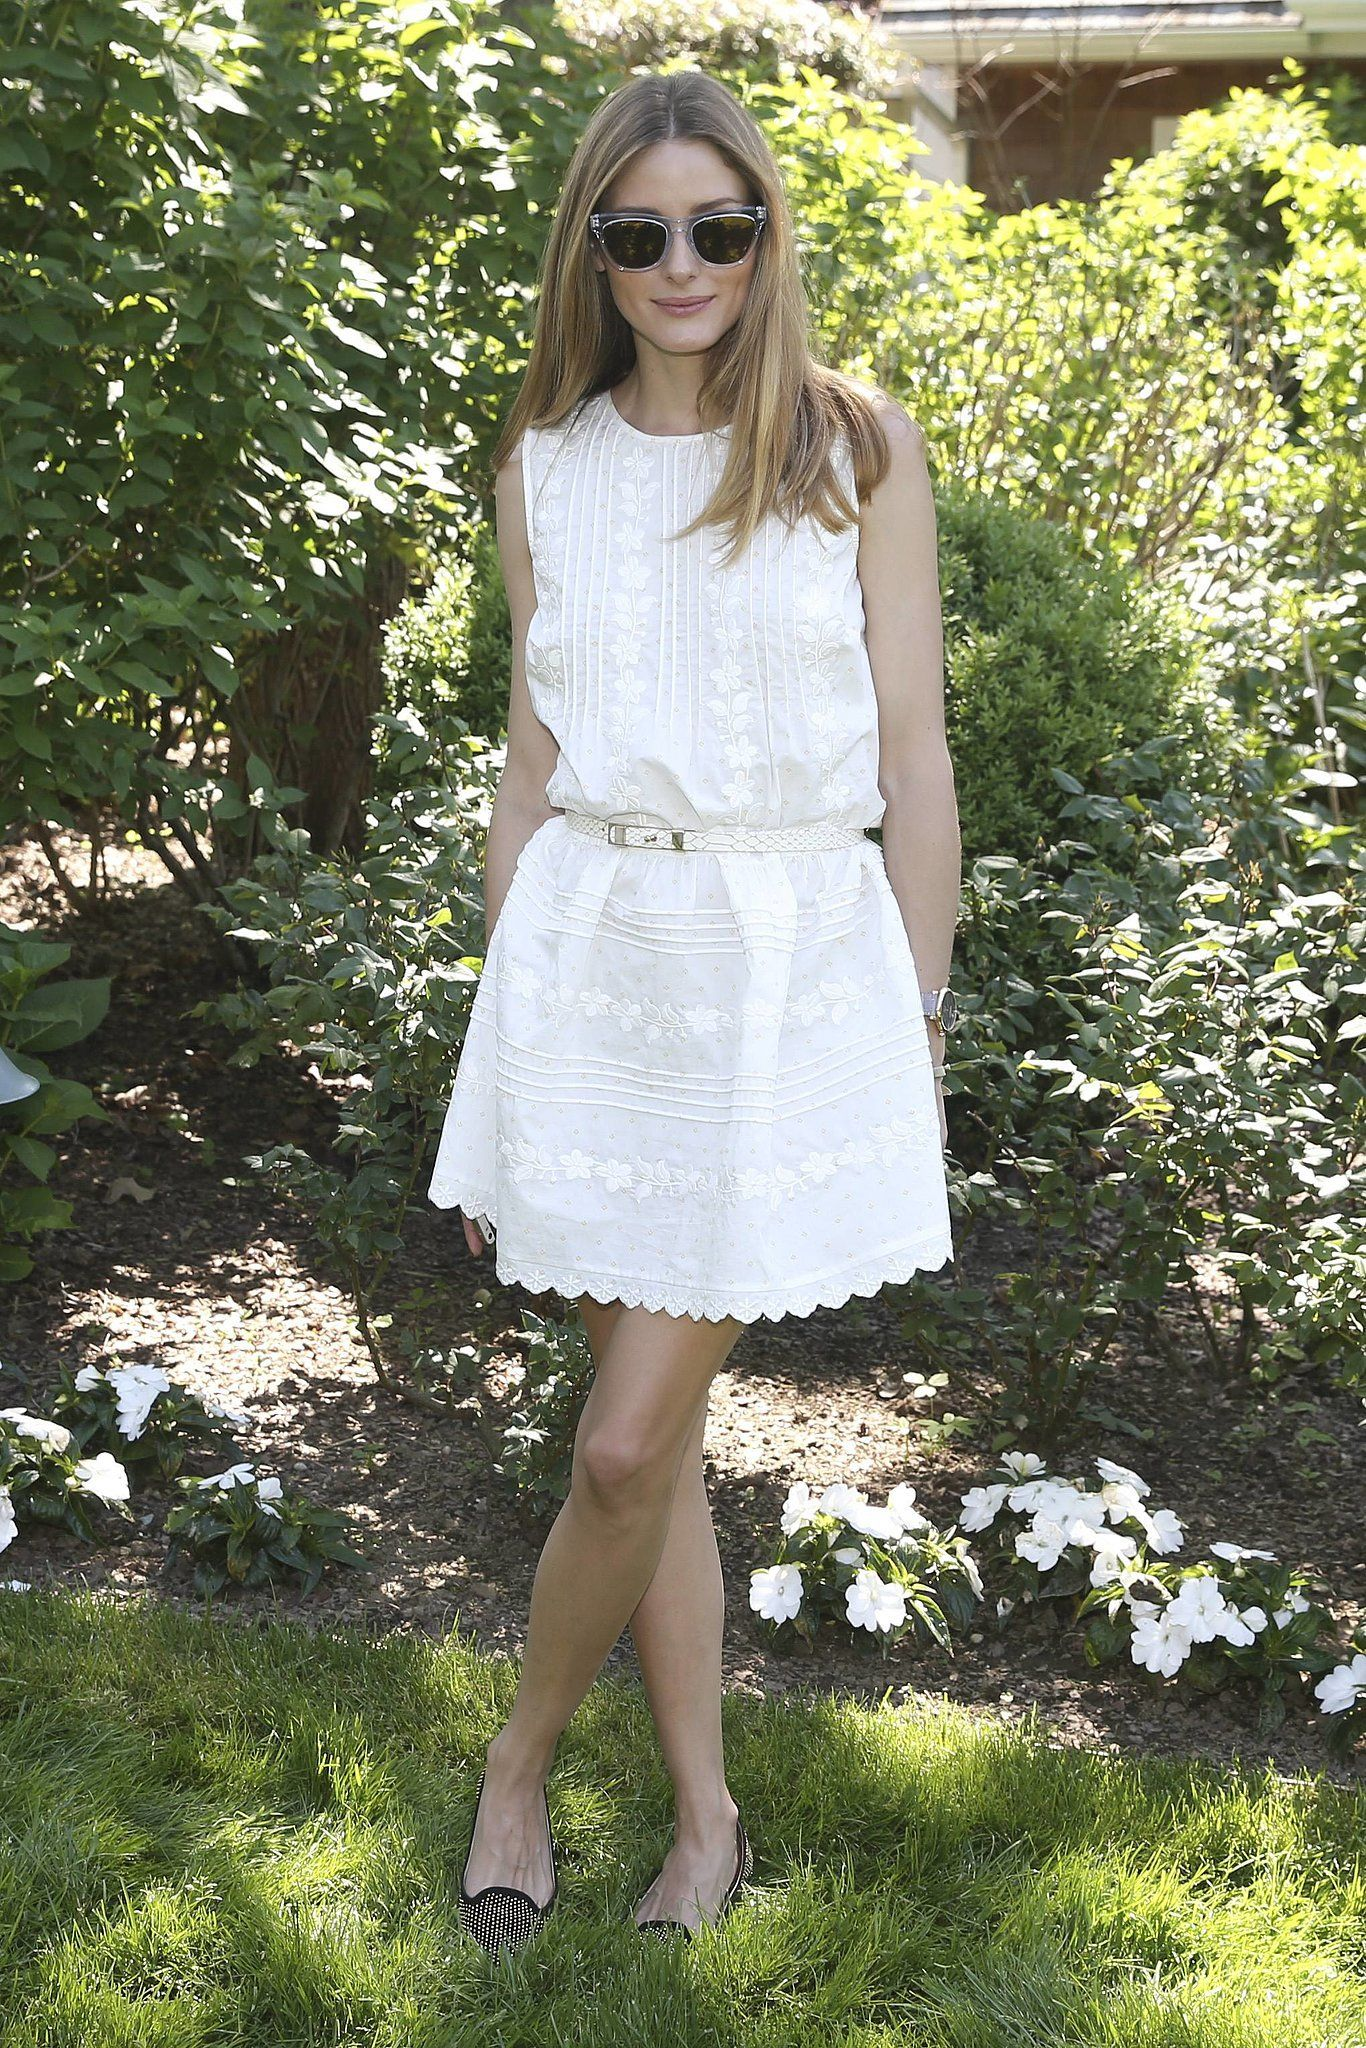 Olivia's LWD is the kind we'd live in all Summer. Sweet embroidery and a classic fit-and-flare shape make it easy to dress up or down for a ...